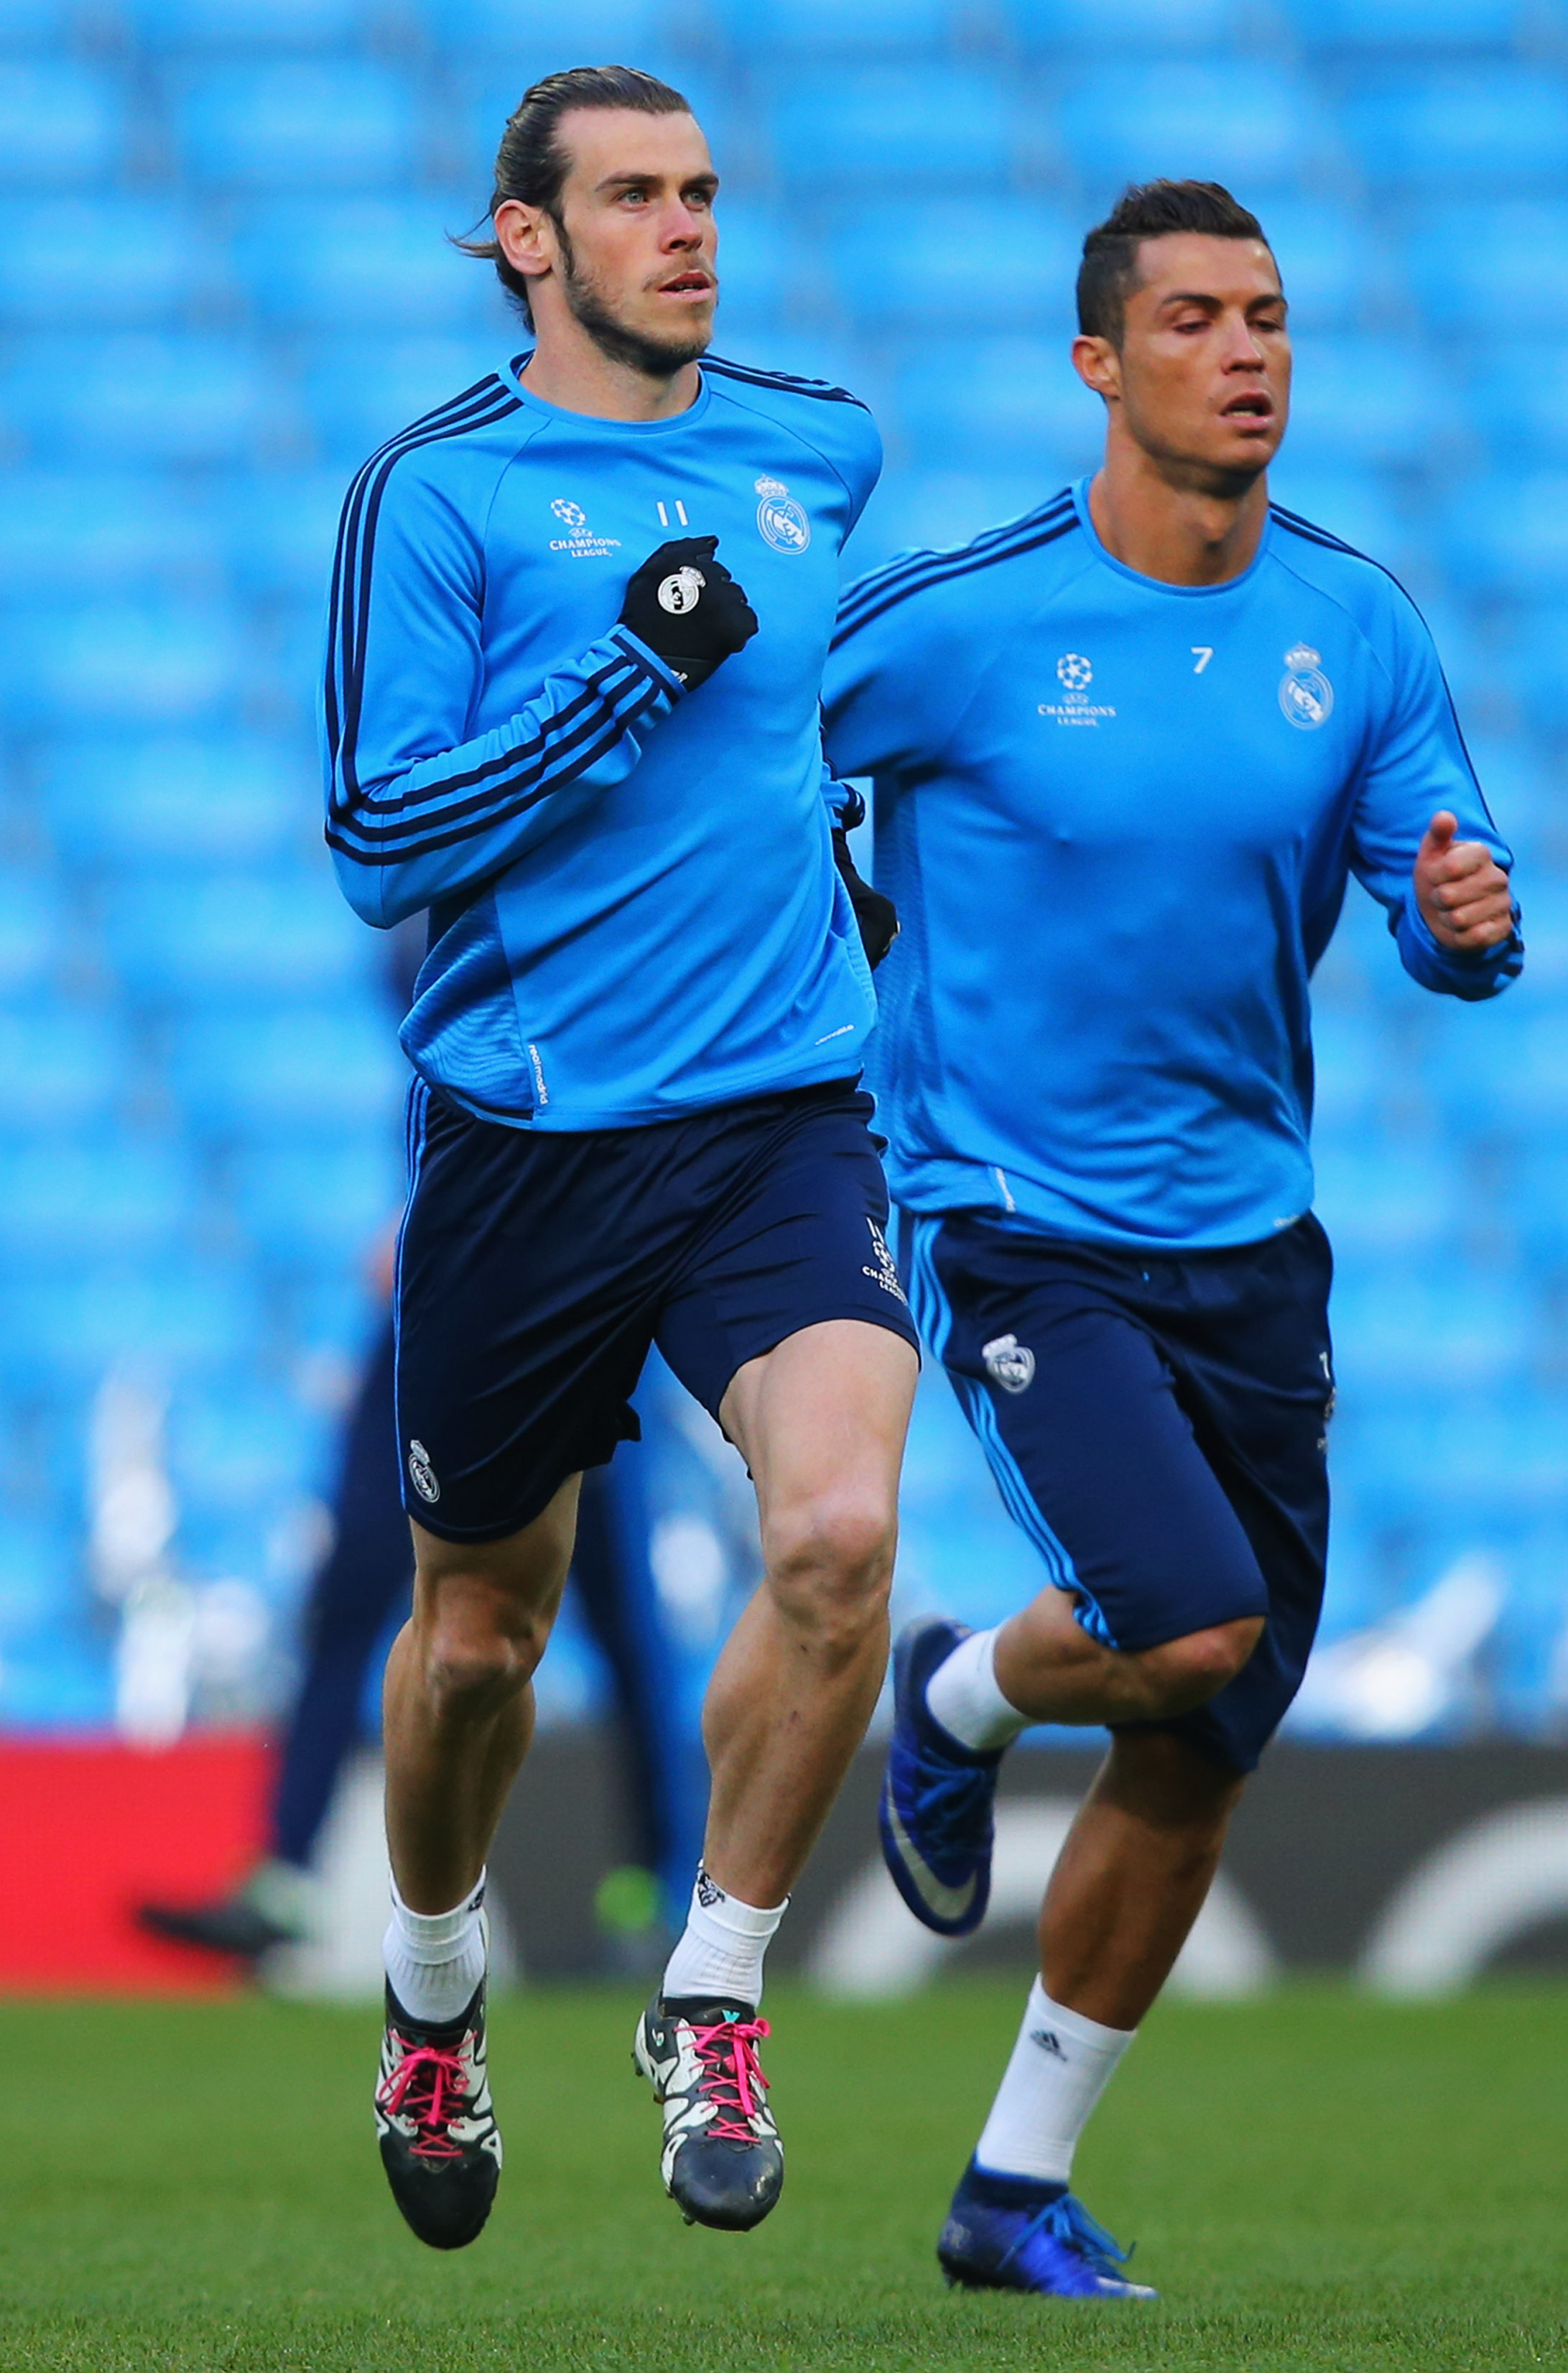 Bale and Ronaldo, not teammates today.